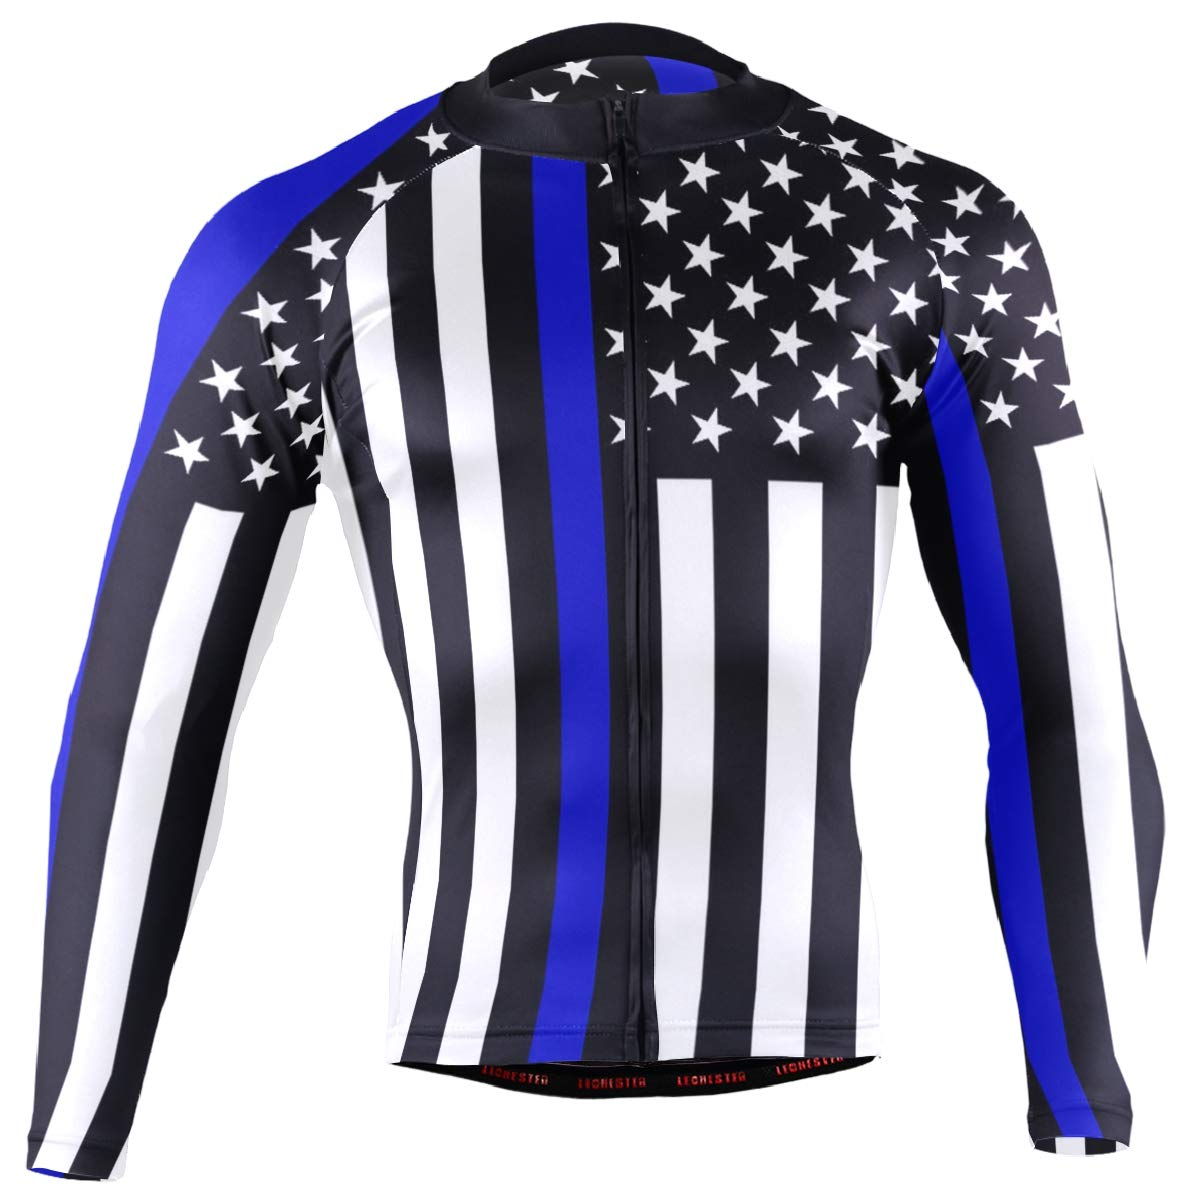 CHINEIN Men's Cycling Jersey Long Sleeve with 3 Rear Pockets Shirt Police Thin Blue Line American Flag by CHINEIN